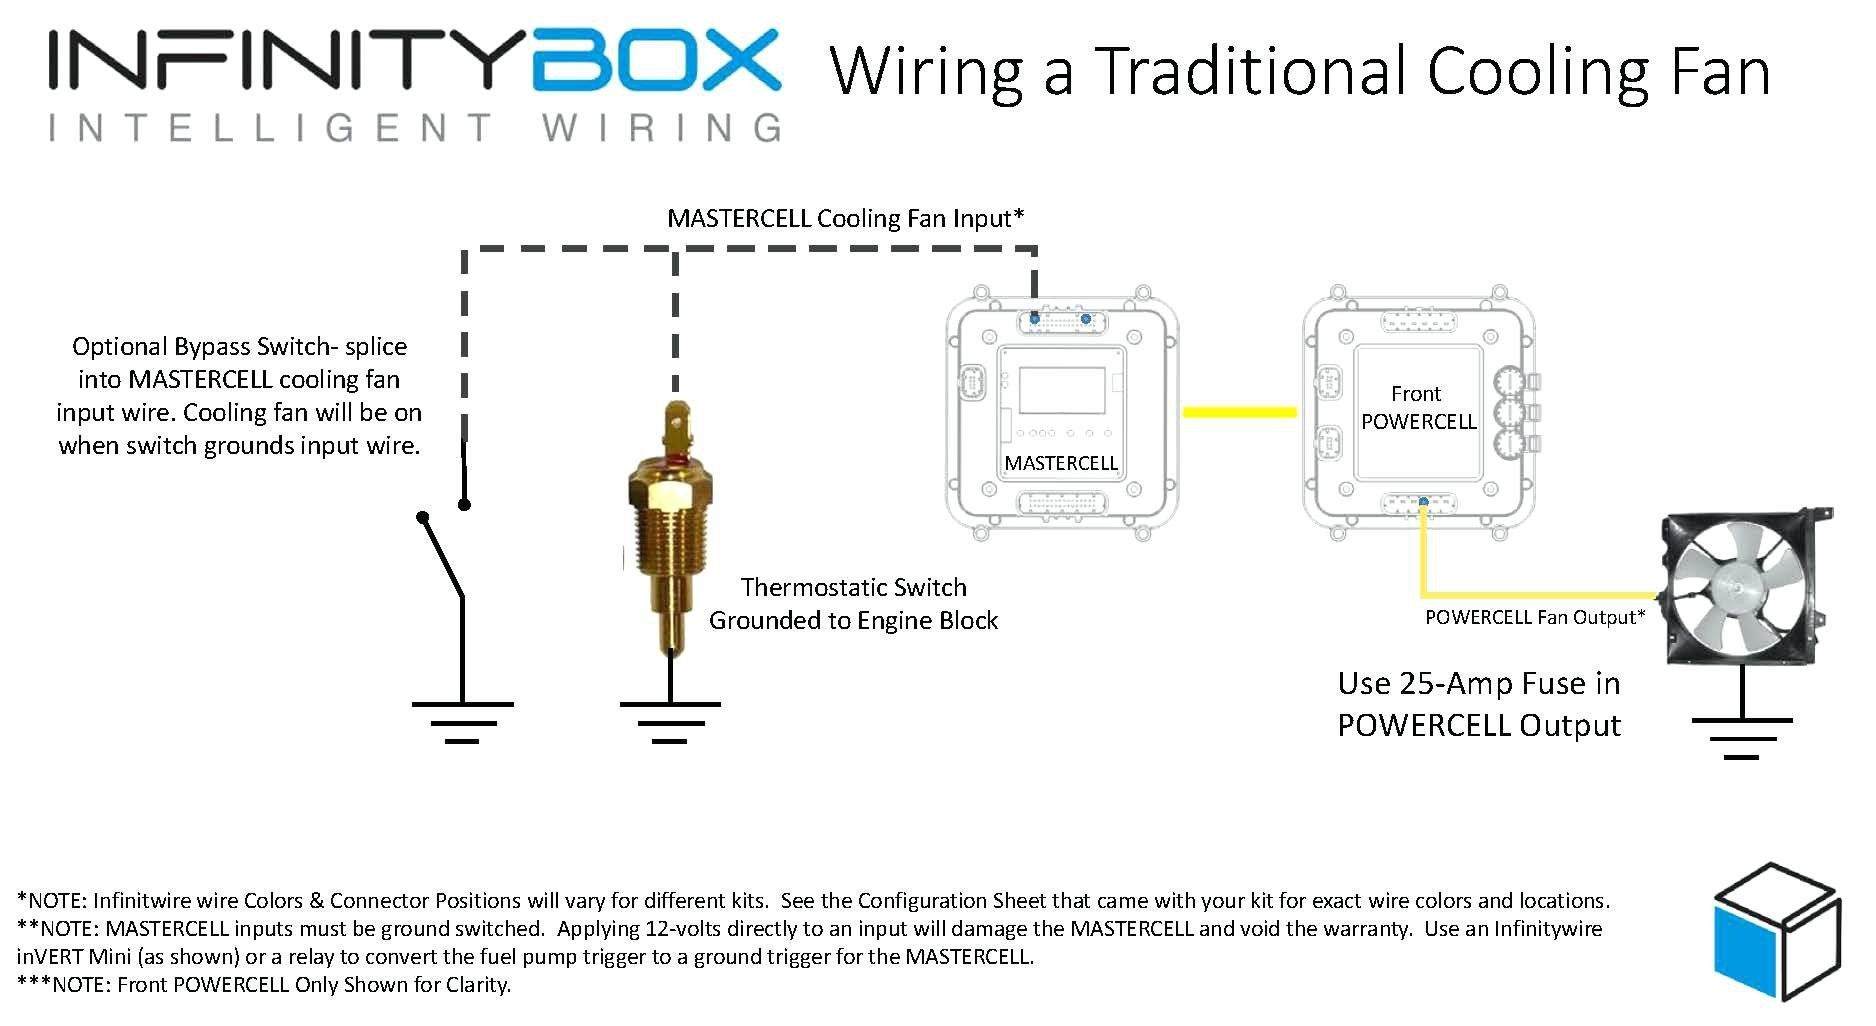 Full Size of 3 Speed Ceiling Fan Motor Wiring Diagram A Cooling Picture That Rt